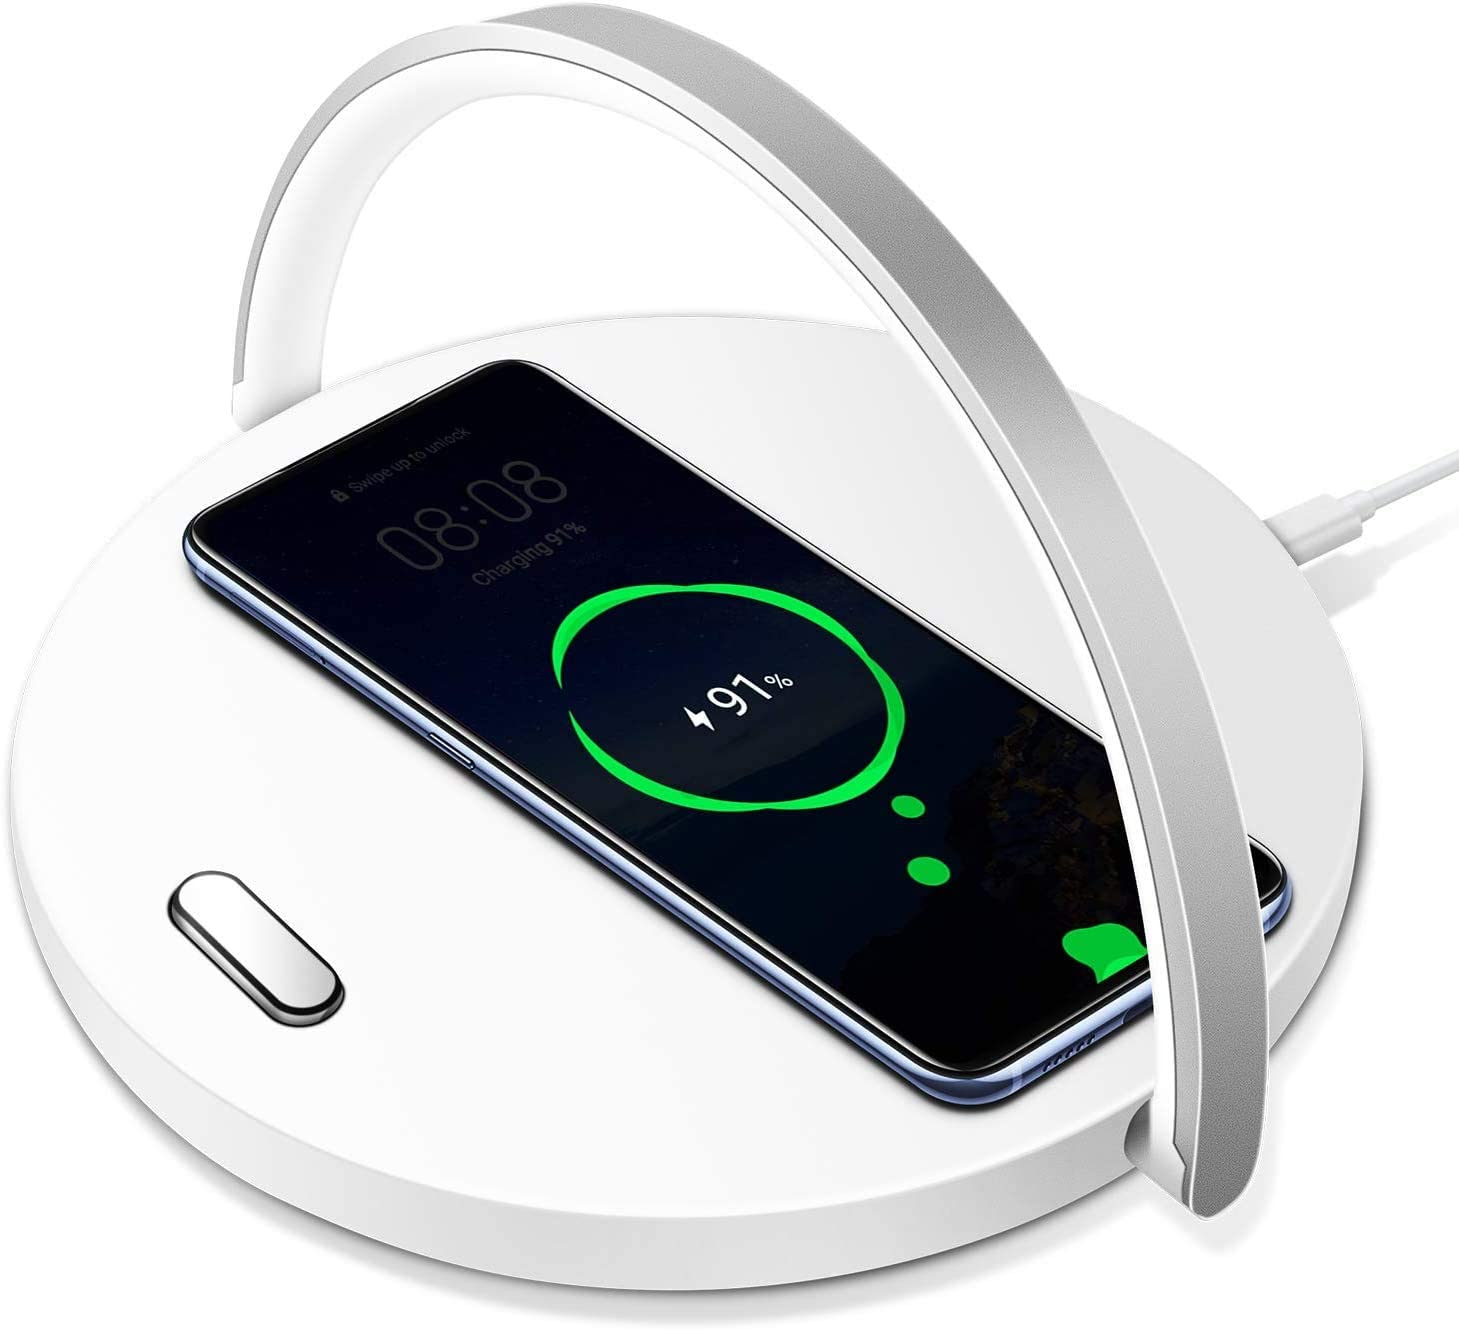 Fast Qi Wireless Charger with LED Desk Lamp, Wireless Charging Station Inductive Charger for iPhone 11/XS/MAX Galaxy S10/Note 9 Huawei P30 Pro etc, Touch Control with Type C Charging Port (White)